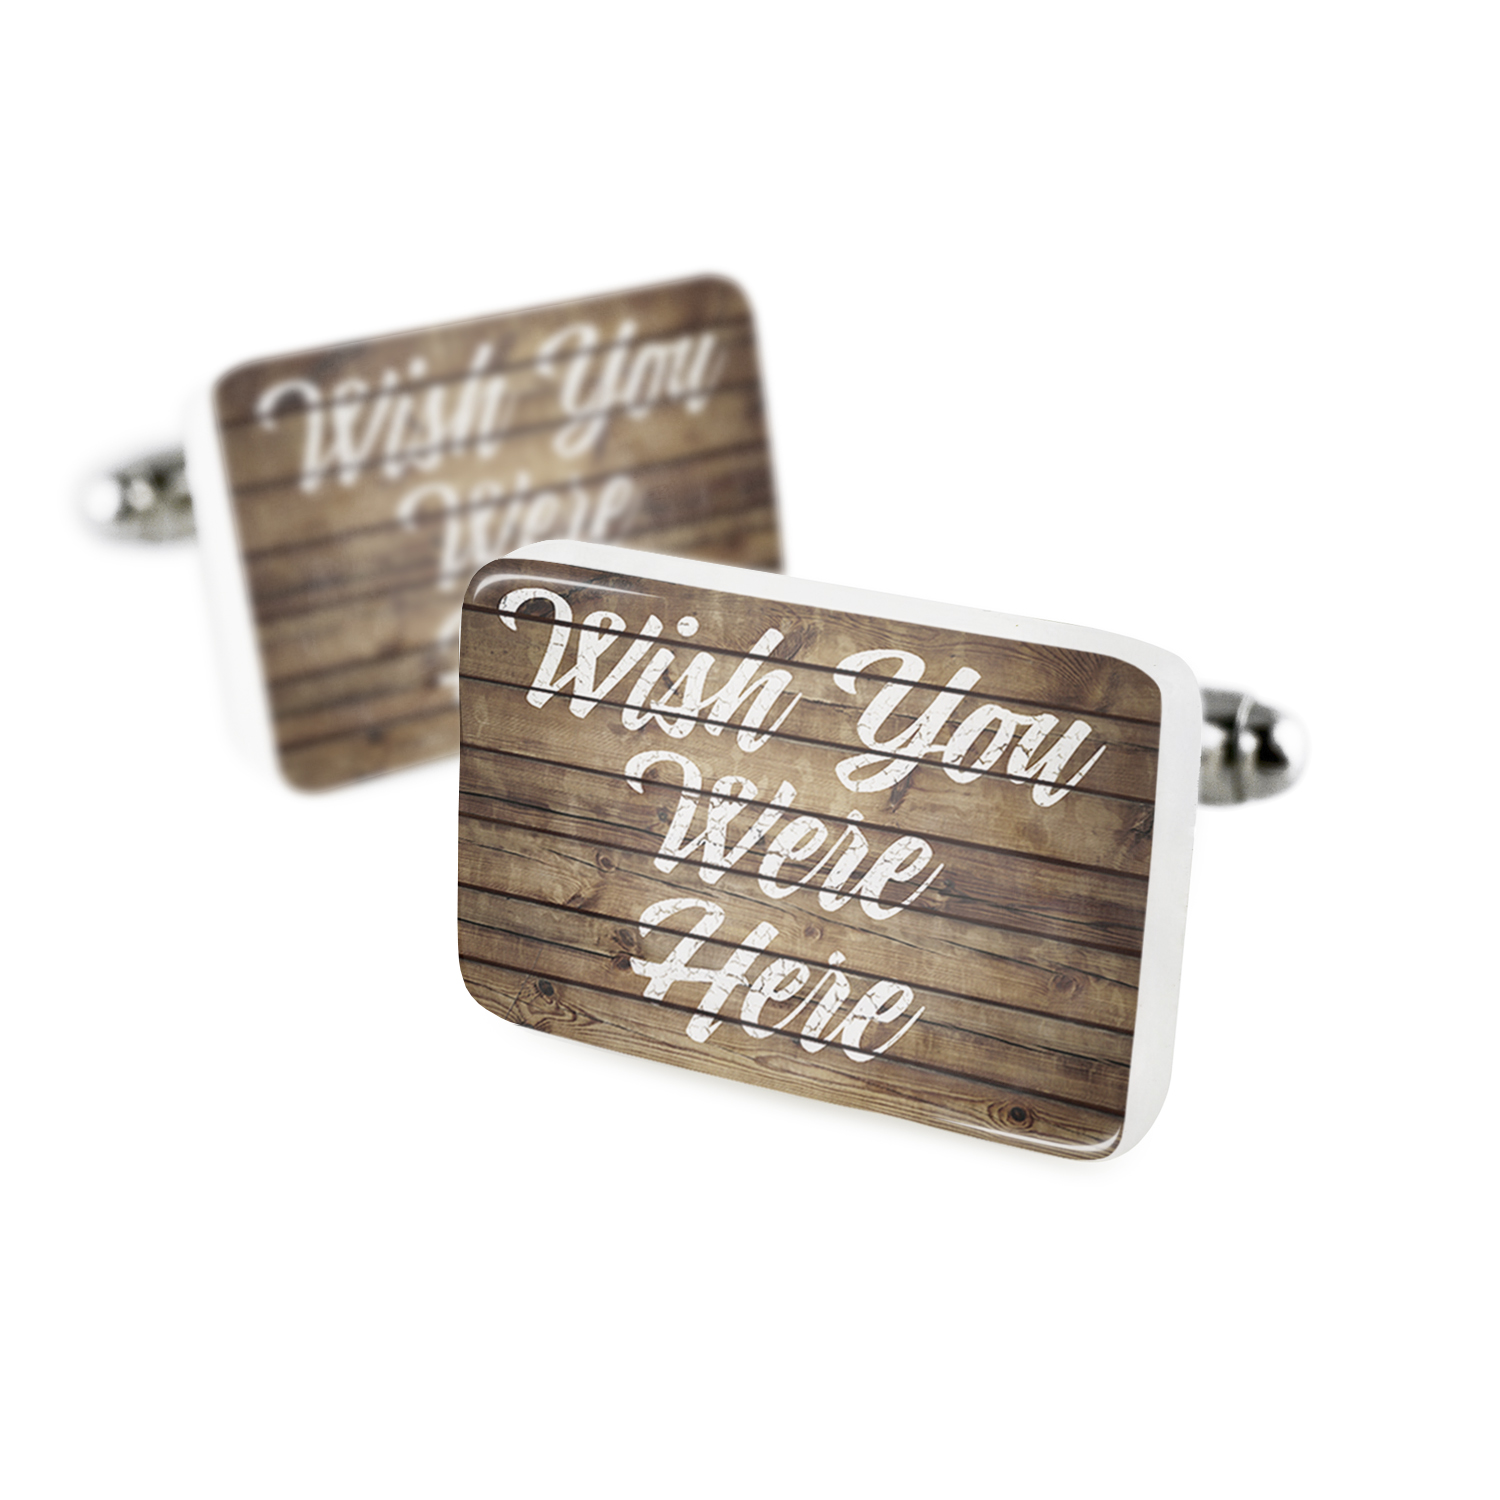 Cufflinks Painted Wood Wish You Were Here Porcelain Ceramic NEONBLOND